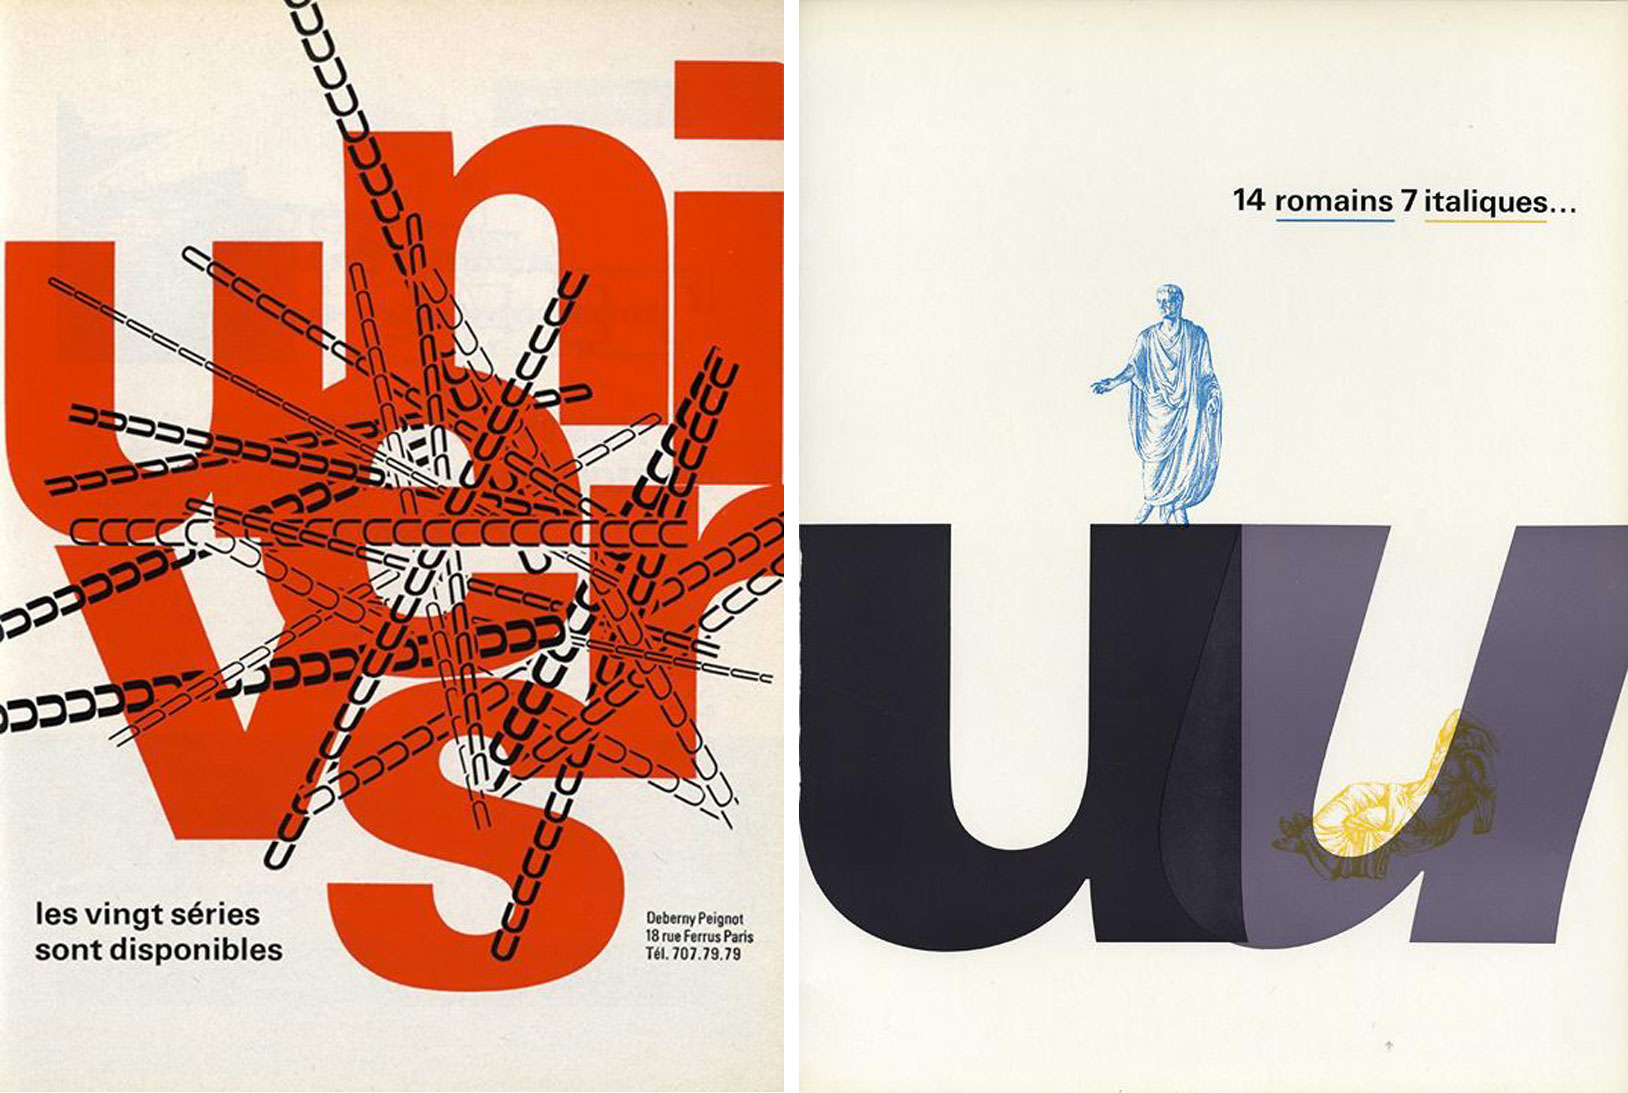 Adrian-frutiger-specimens-univers